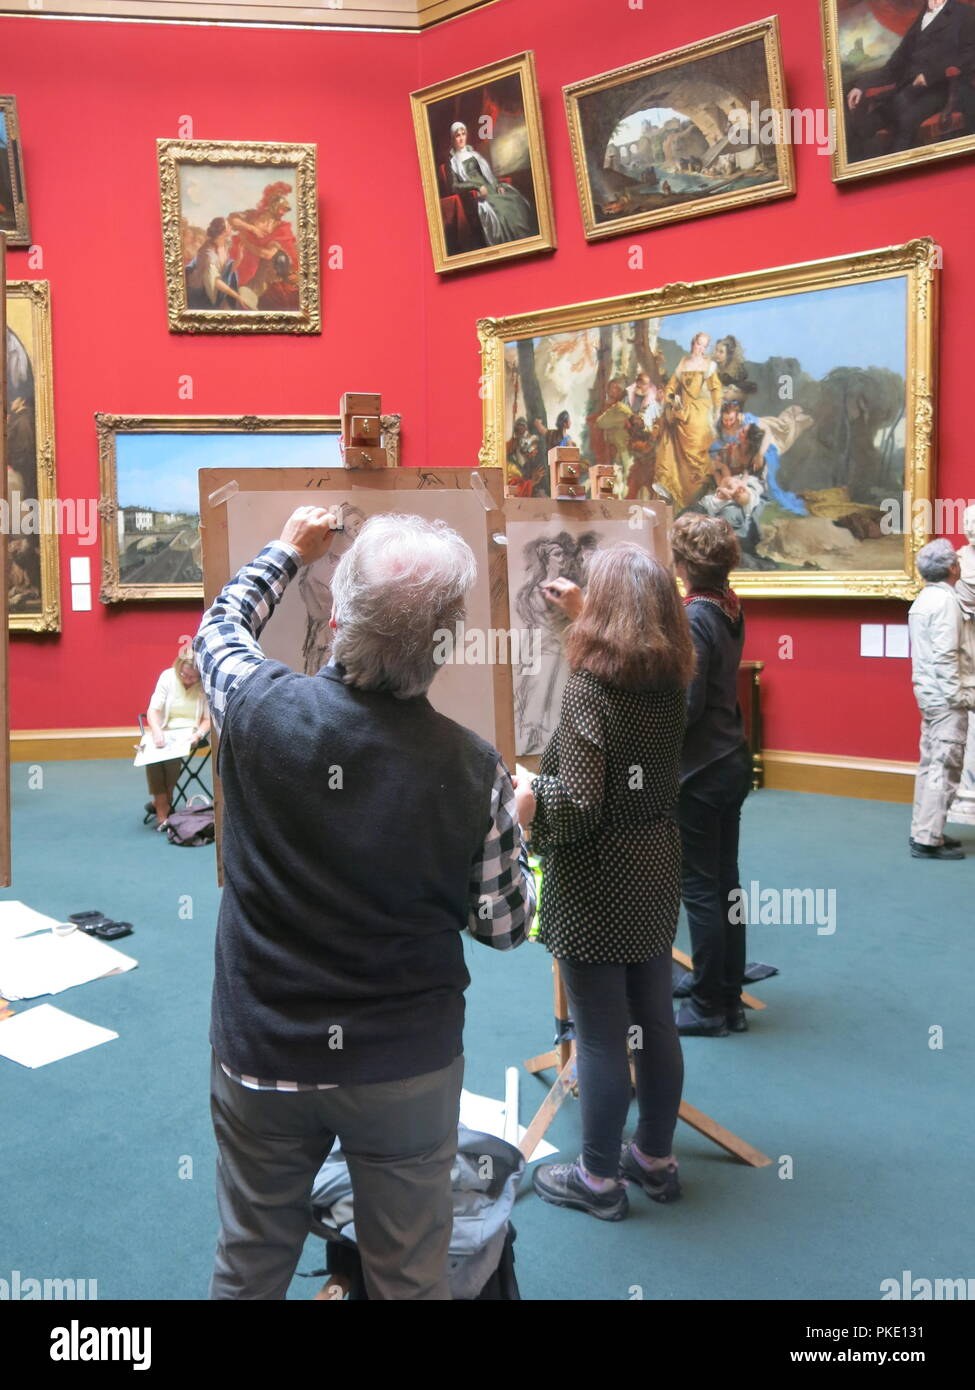 A drop-in session for the public at the Scottish National Gallery on Edinburgh's Princes Street lets you have a go at easel sketching in the Main Hall. Stock Photo